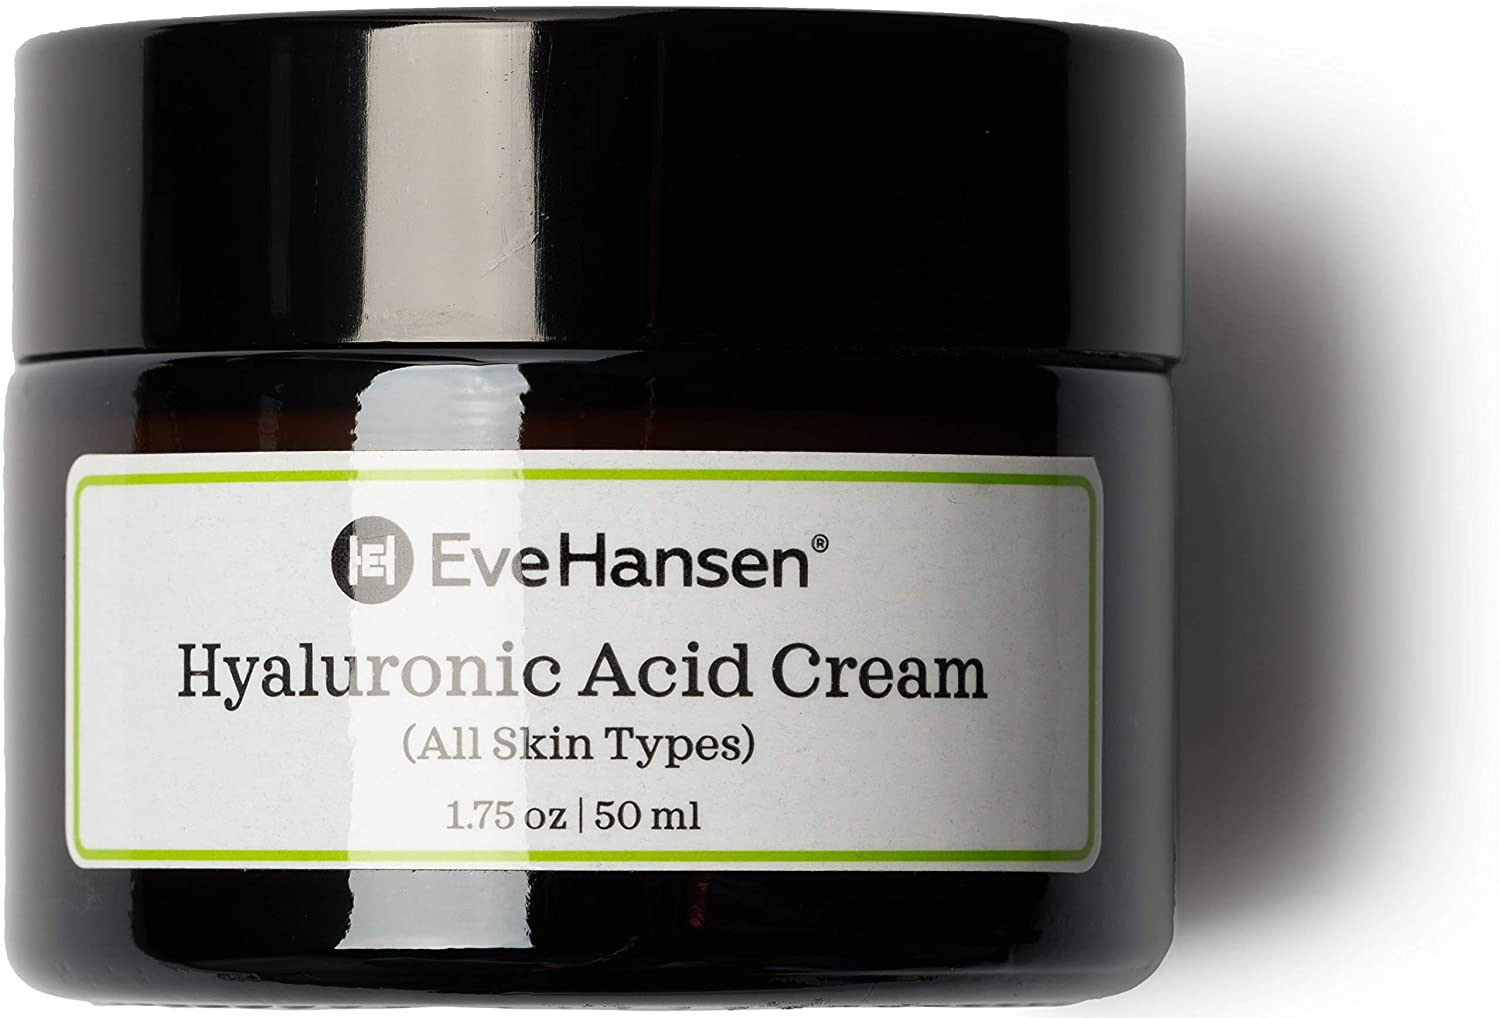 Hyaluronic Acid Cream by Eve Hansen - Hydrating, Anti Aging Cream for Younger and Plumper Skin - 1.75 Ounces